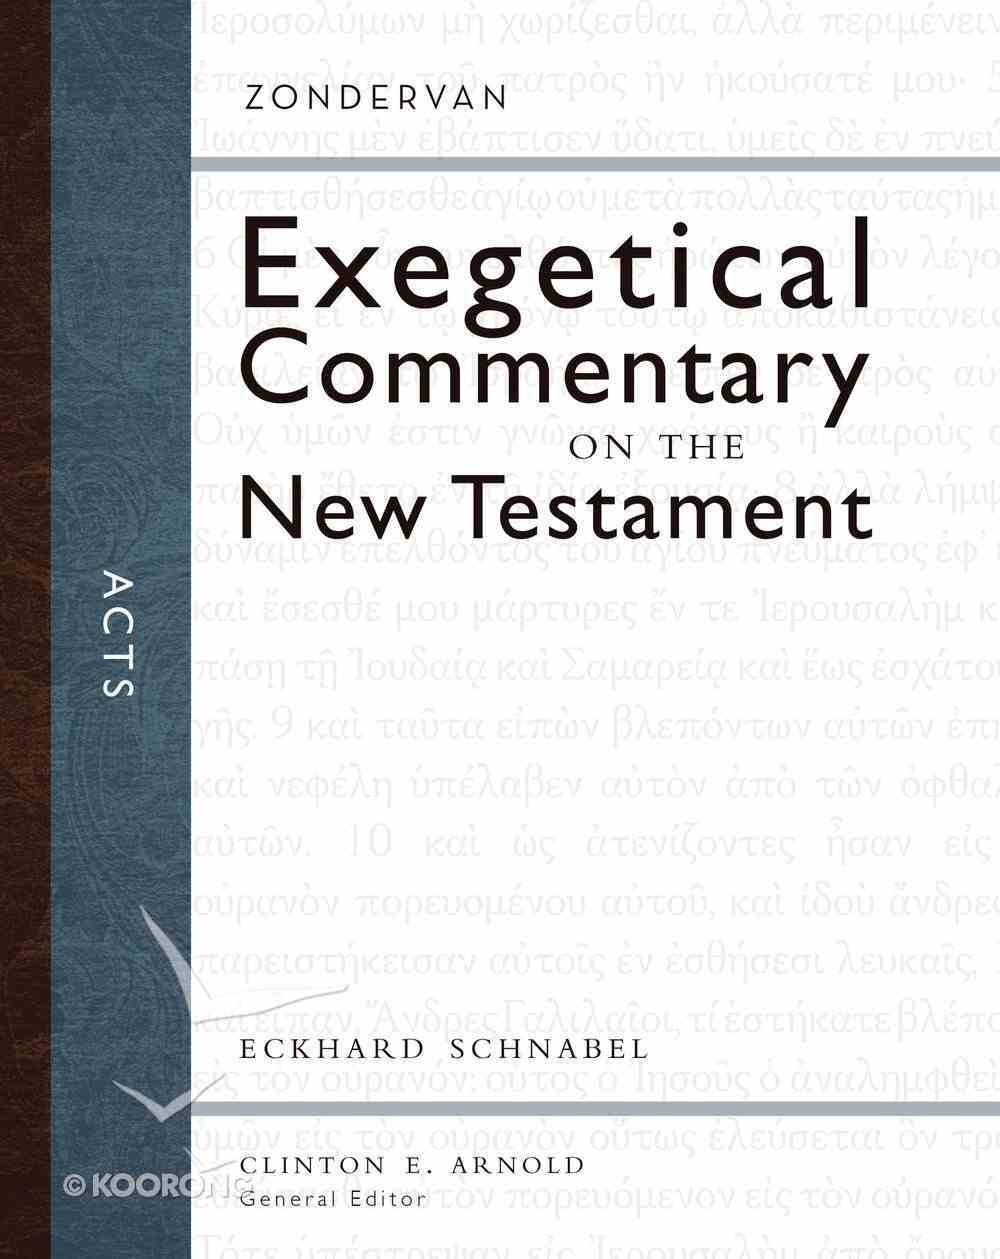 Acts (Zondervan Exegetical Commentary Series On The New Testament) eBook